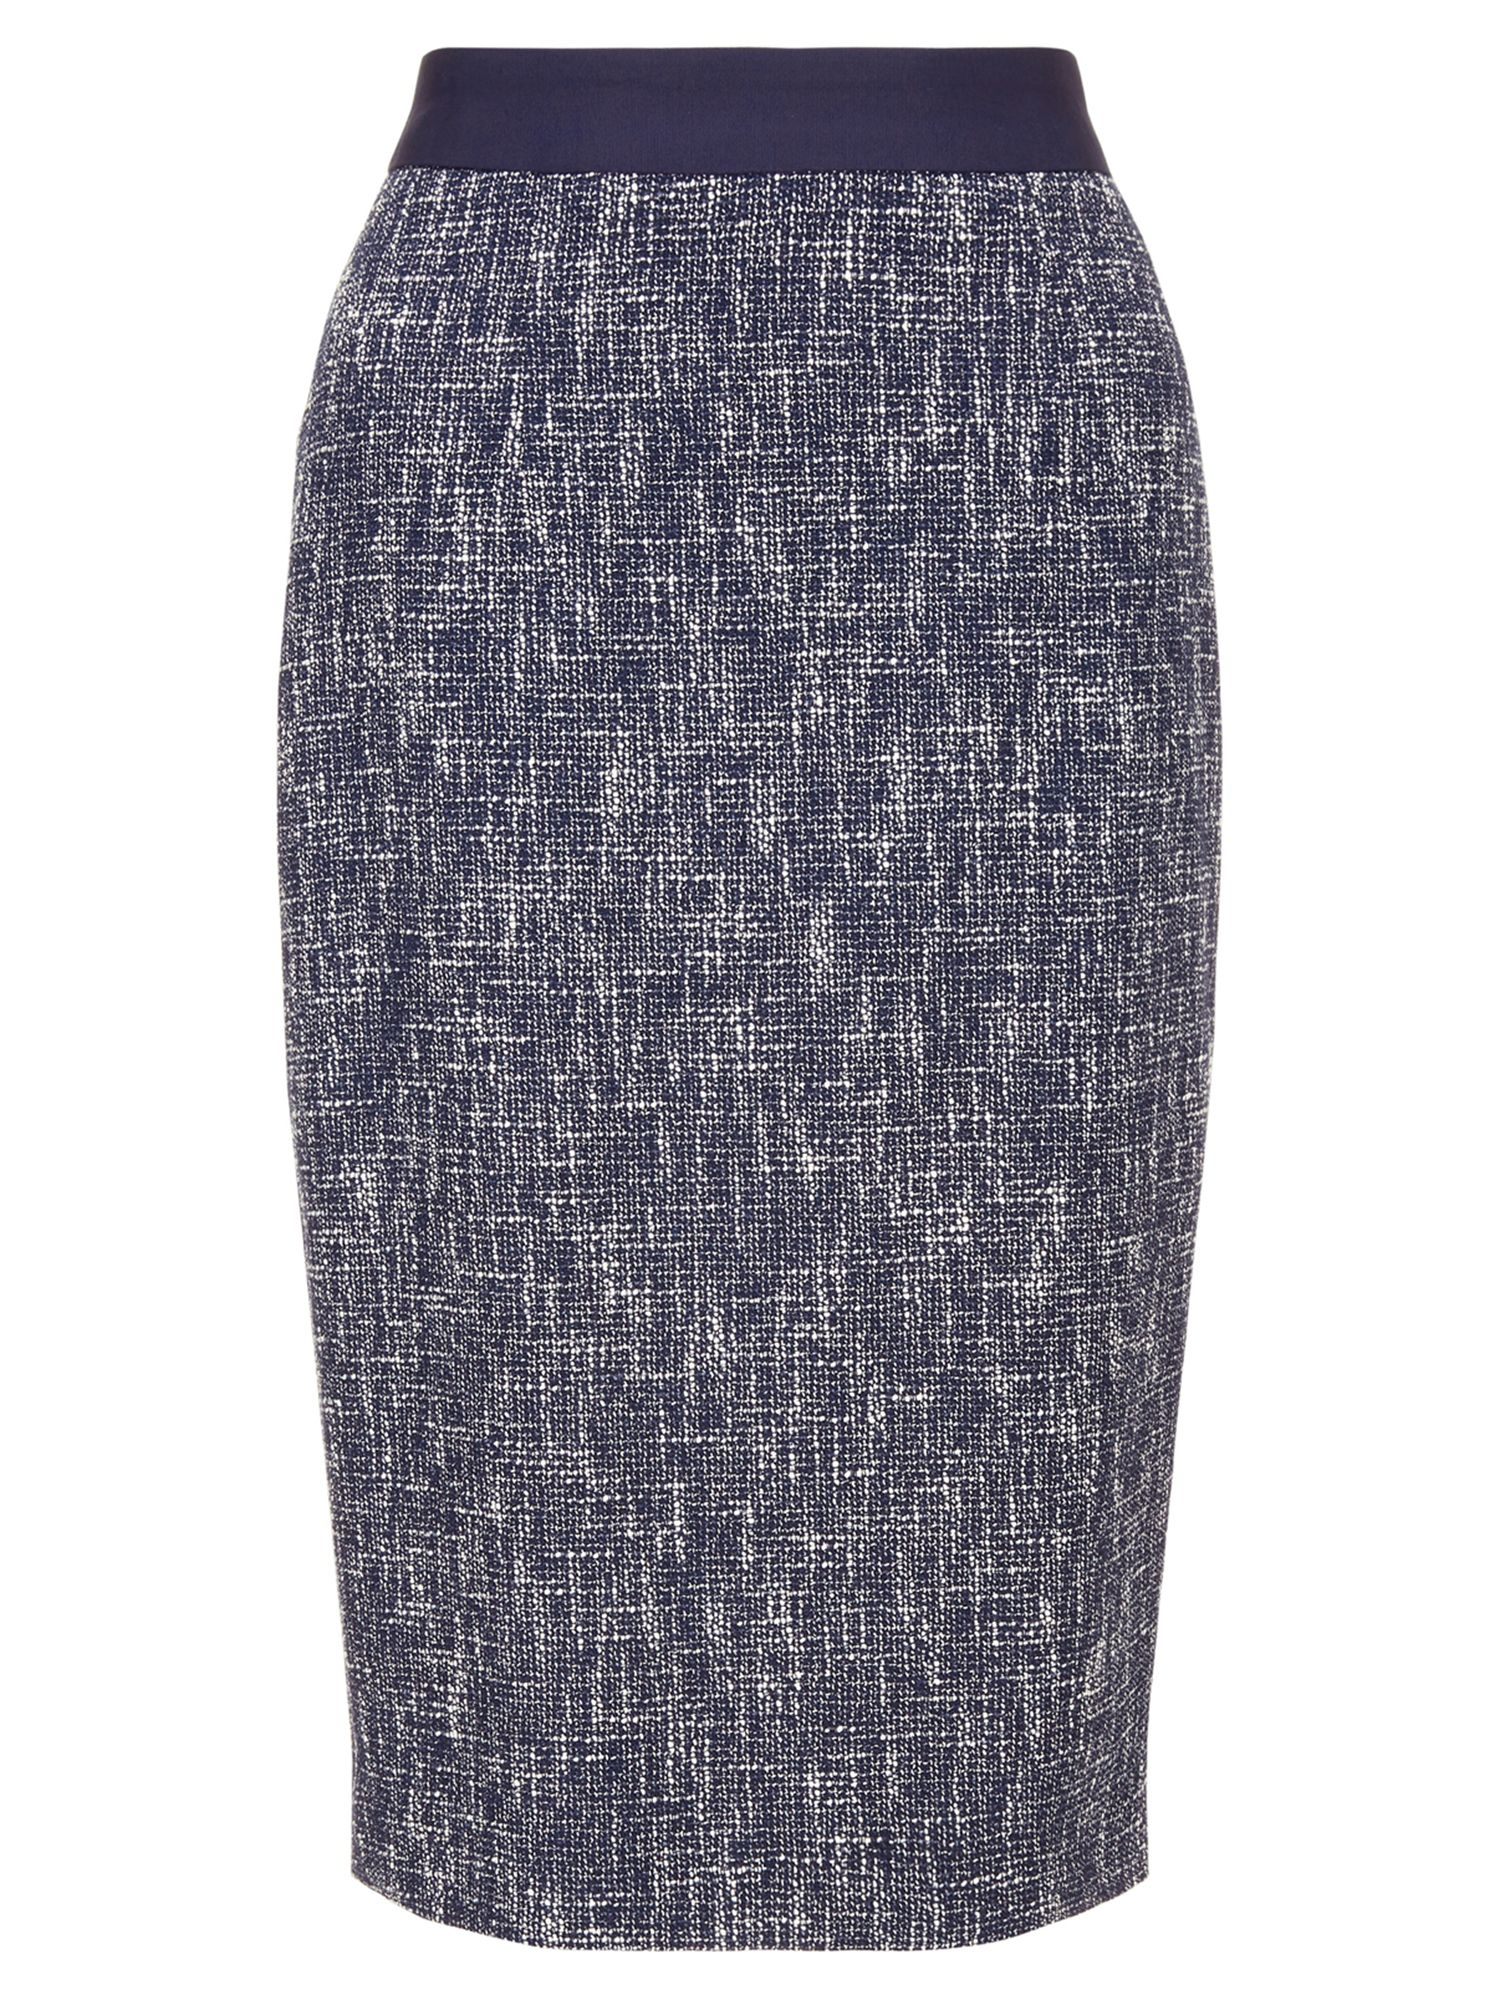 Hobbs Arabella Skirt, Multi-Coloured